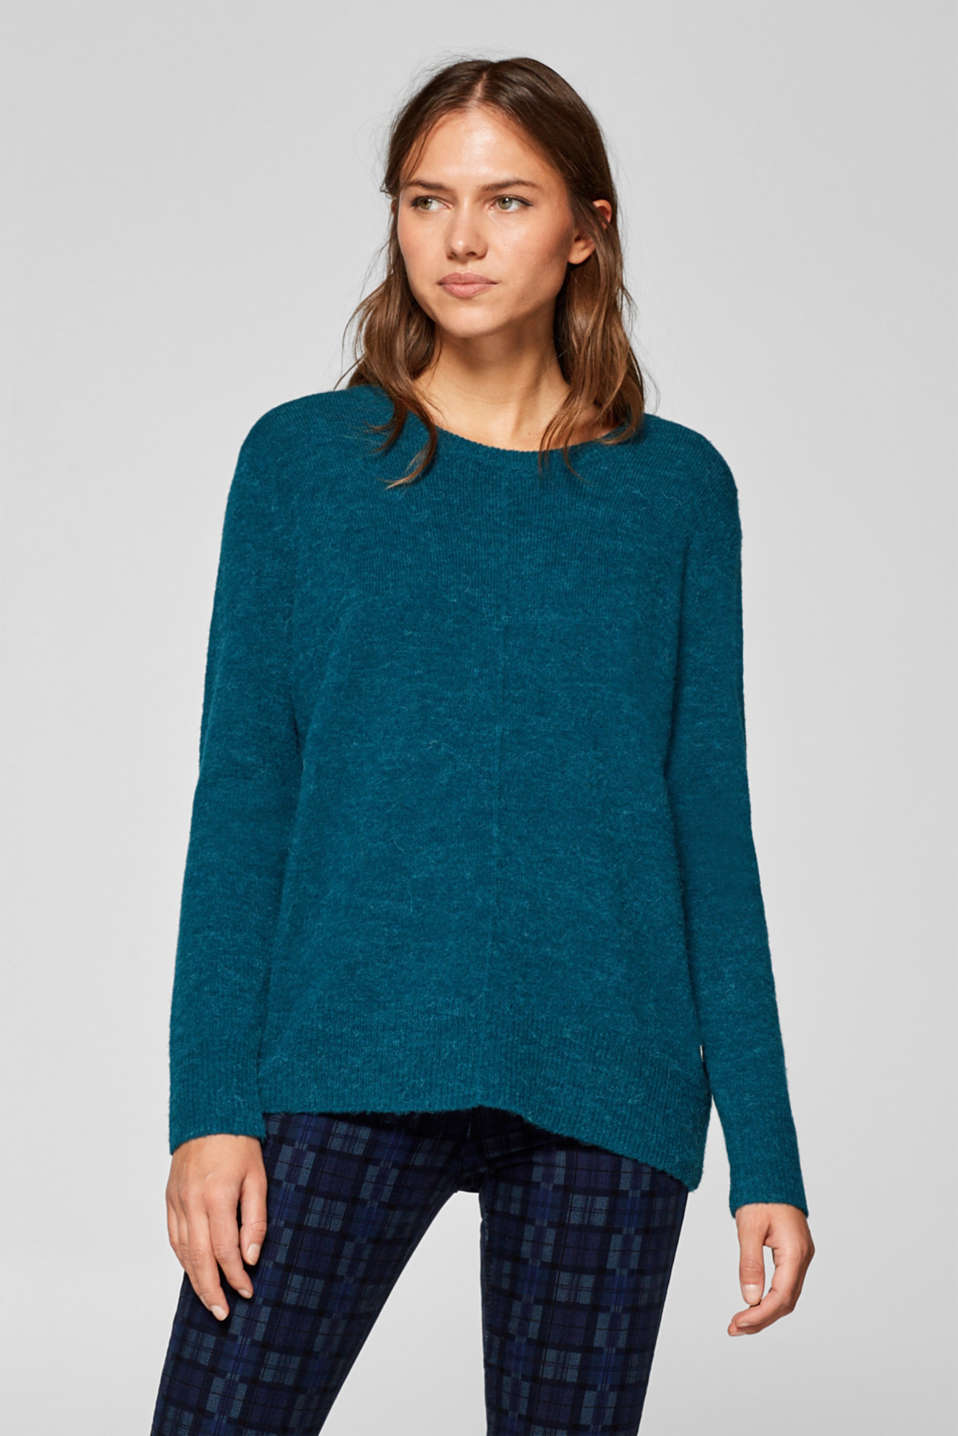 Esprit - With wool: jumper with an inside-out seam